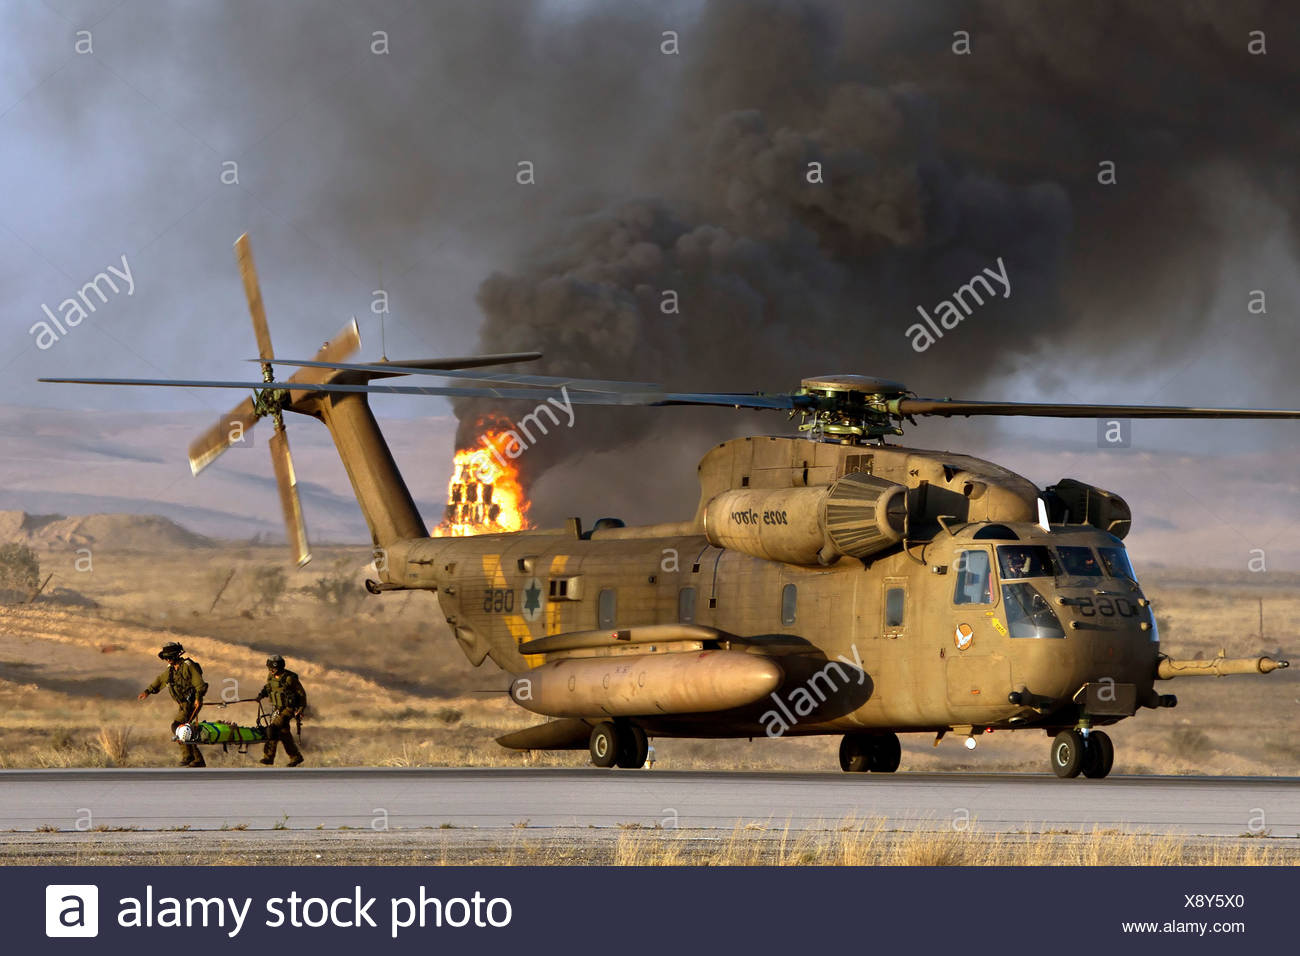 Israeli Air force Sikorsky CH-53 helicopter during a rescue operation - Stock Image